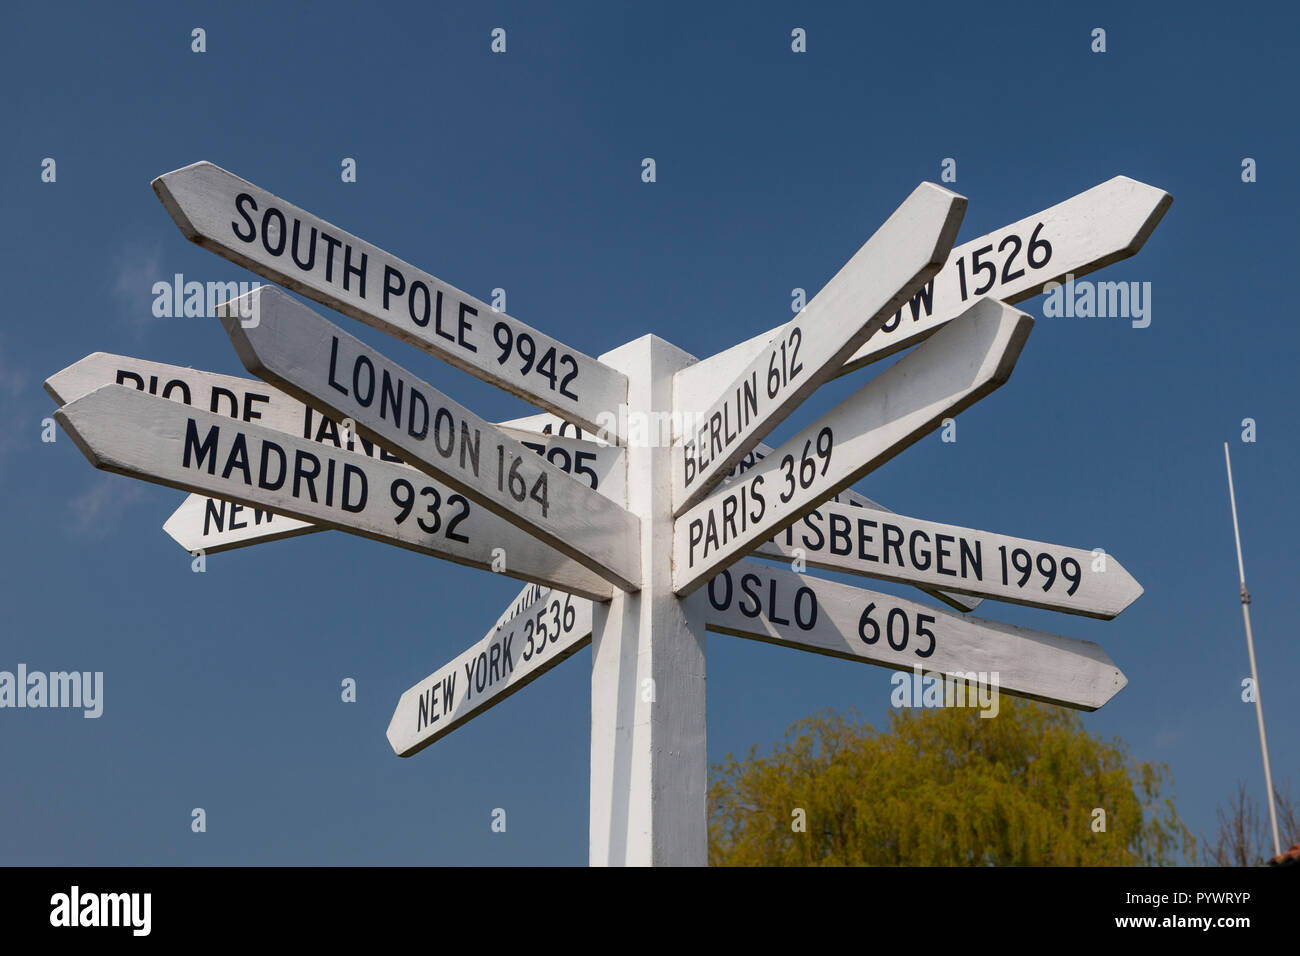 Signpost at Sherburn in Elmet airfield giving distances to locations around the world - Stock Image